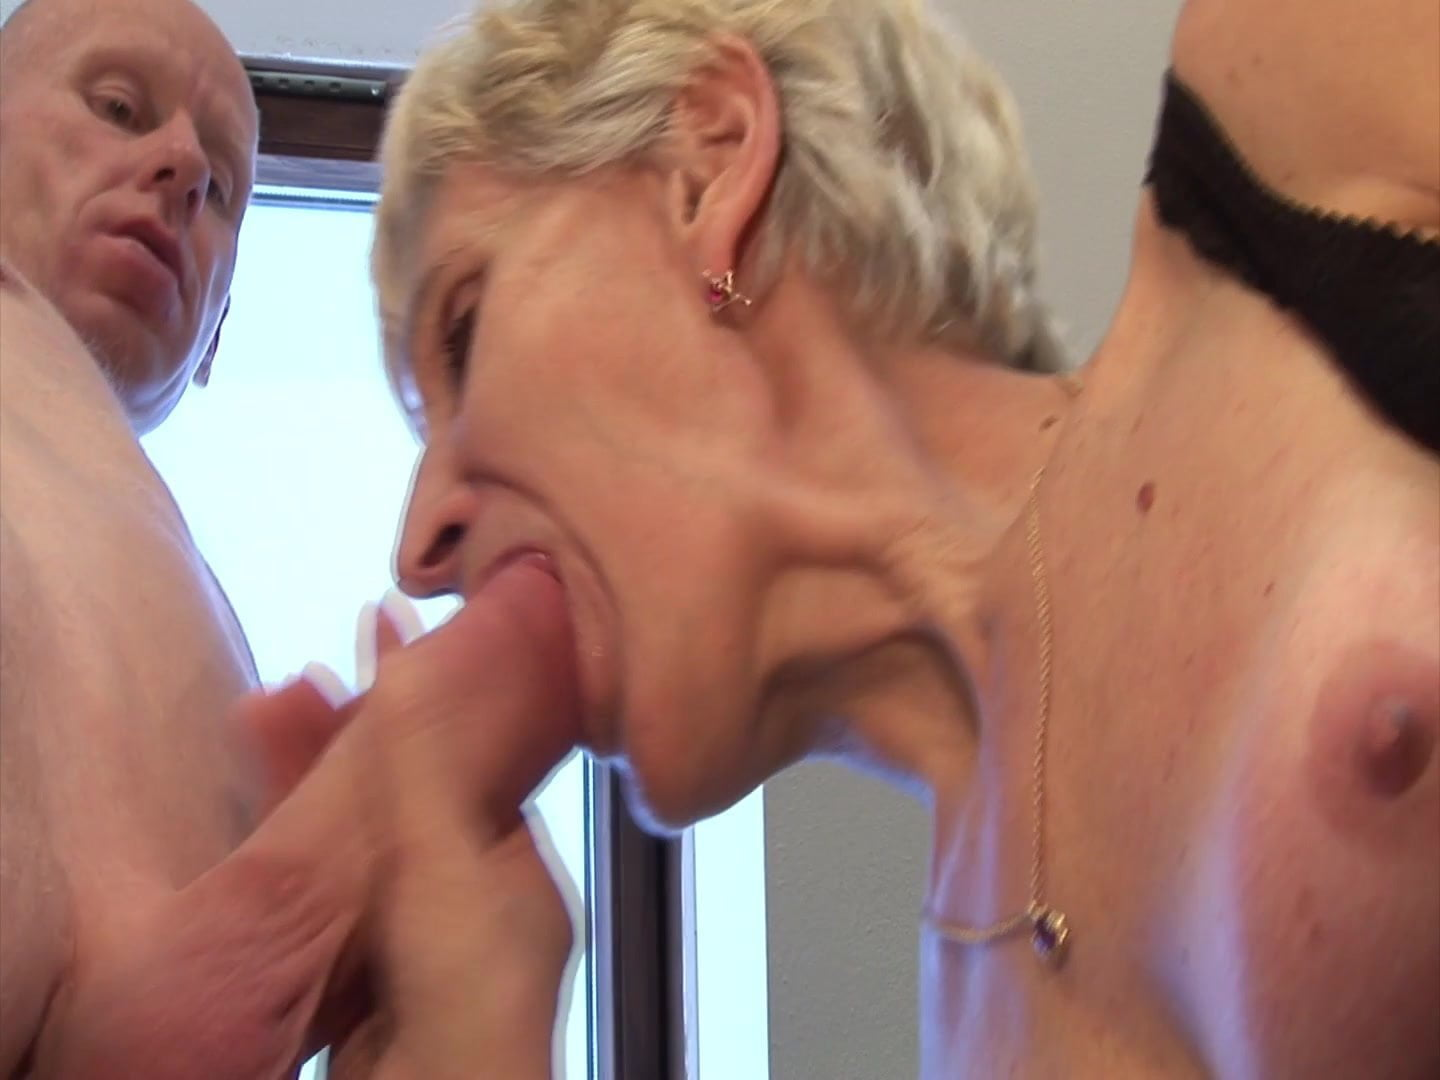 Sex galery pics with granny caught